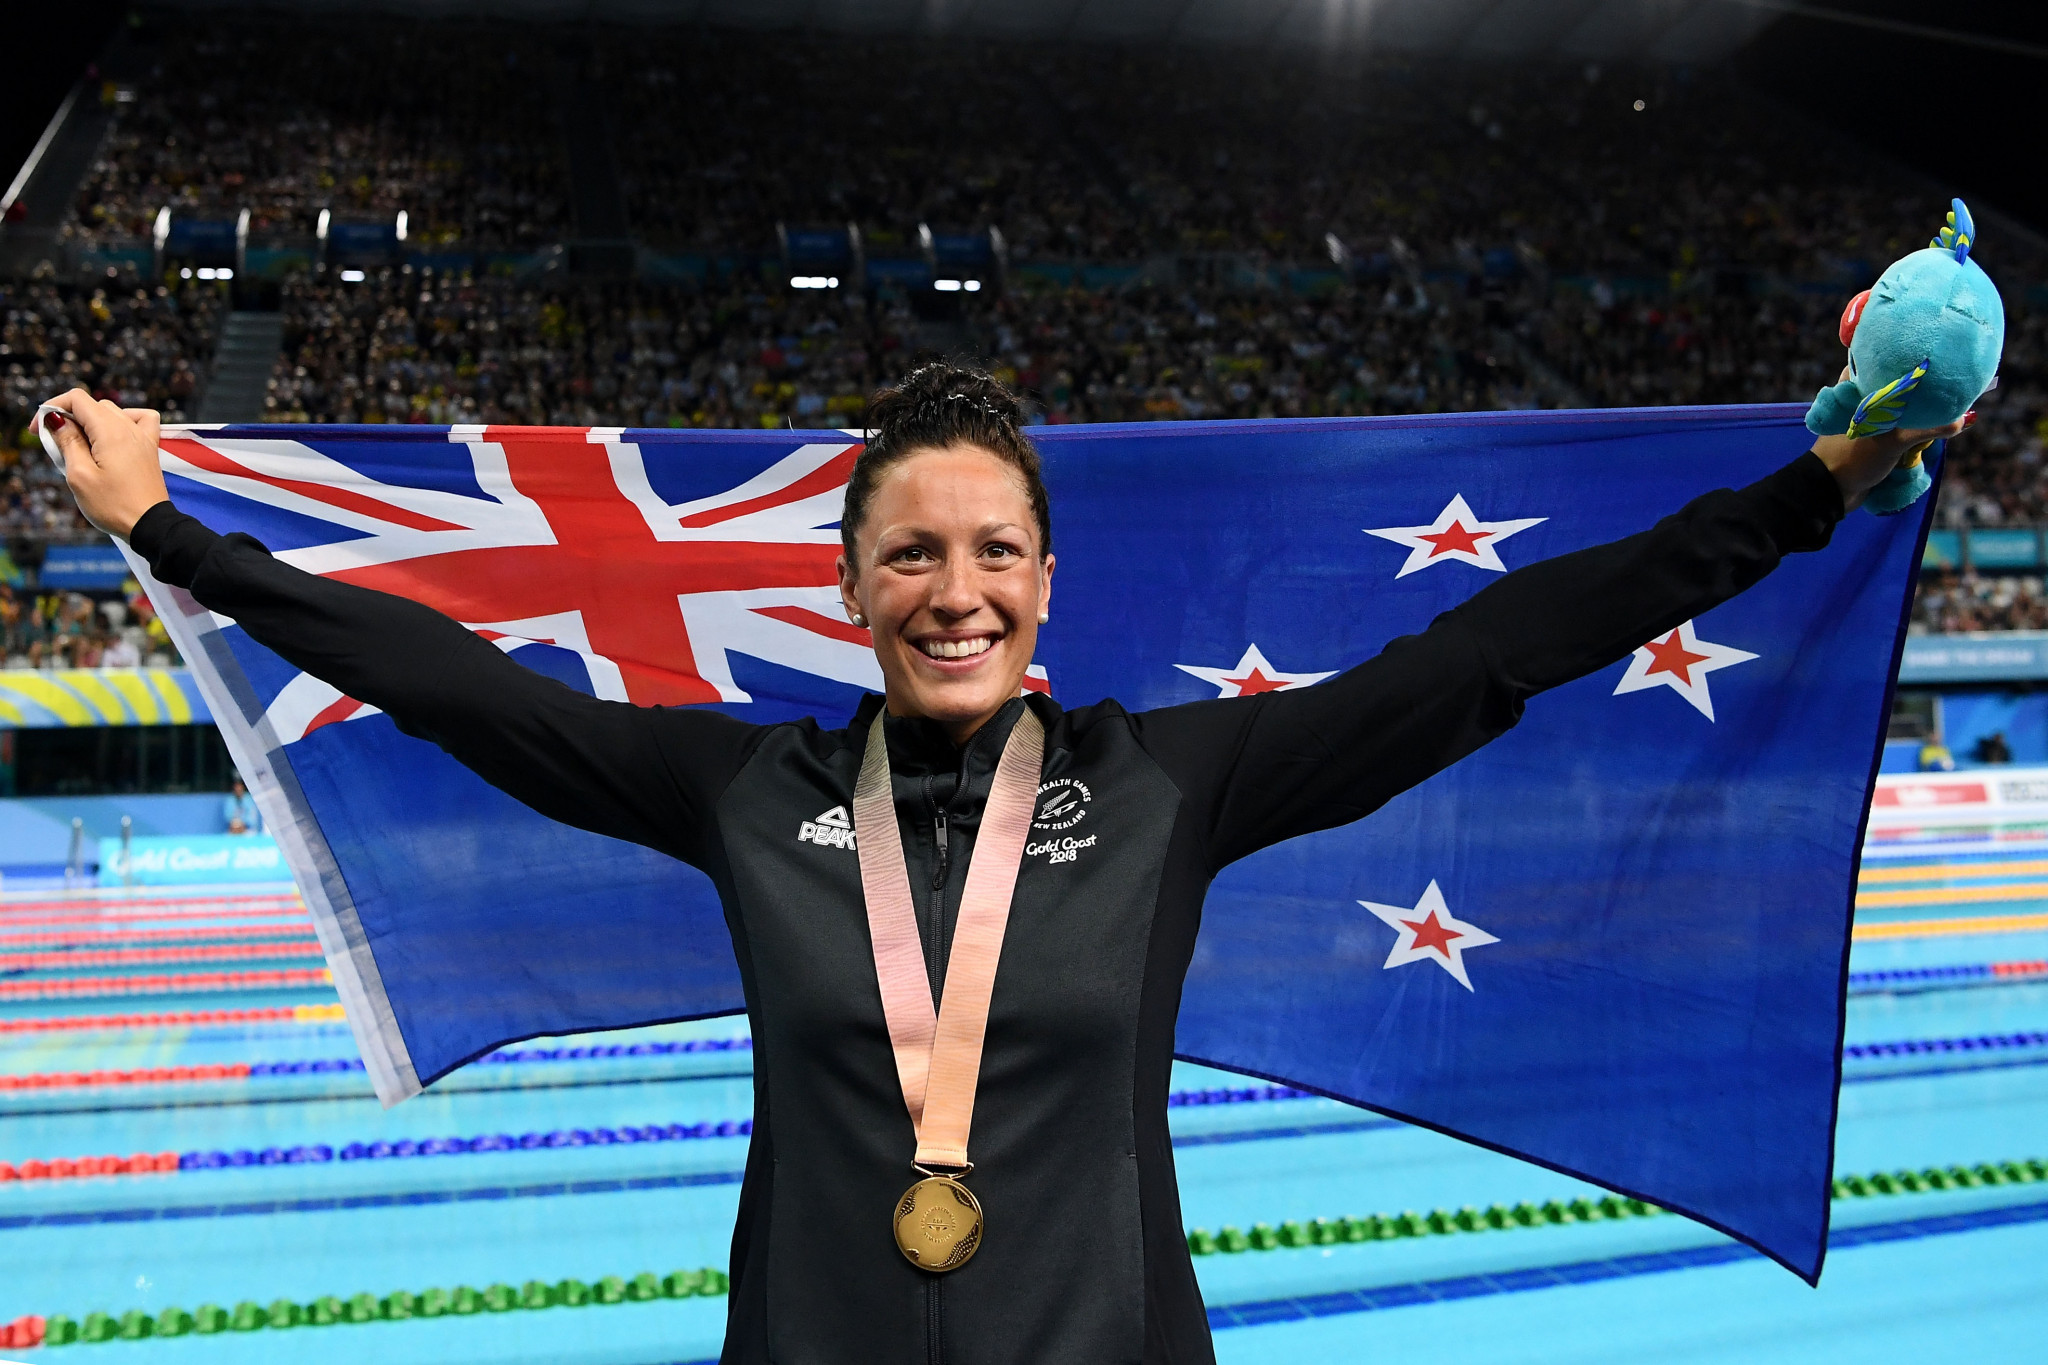 Pascoe headlines New Zealand team for World Para Swimming Championships in London